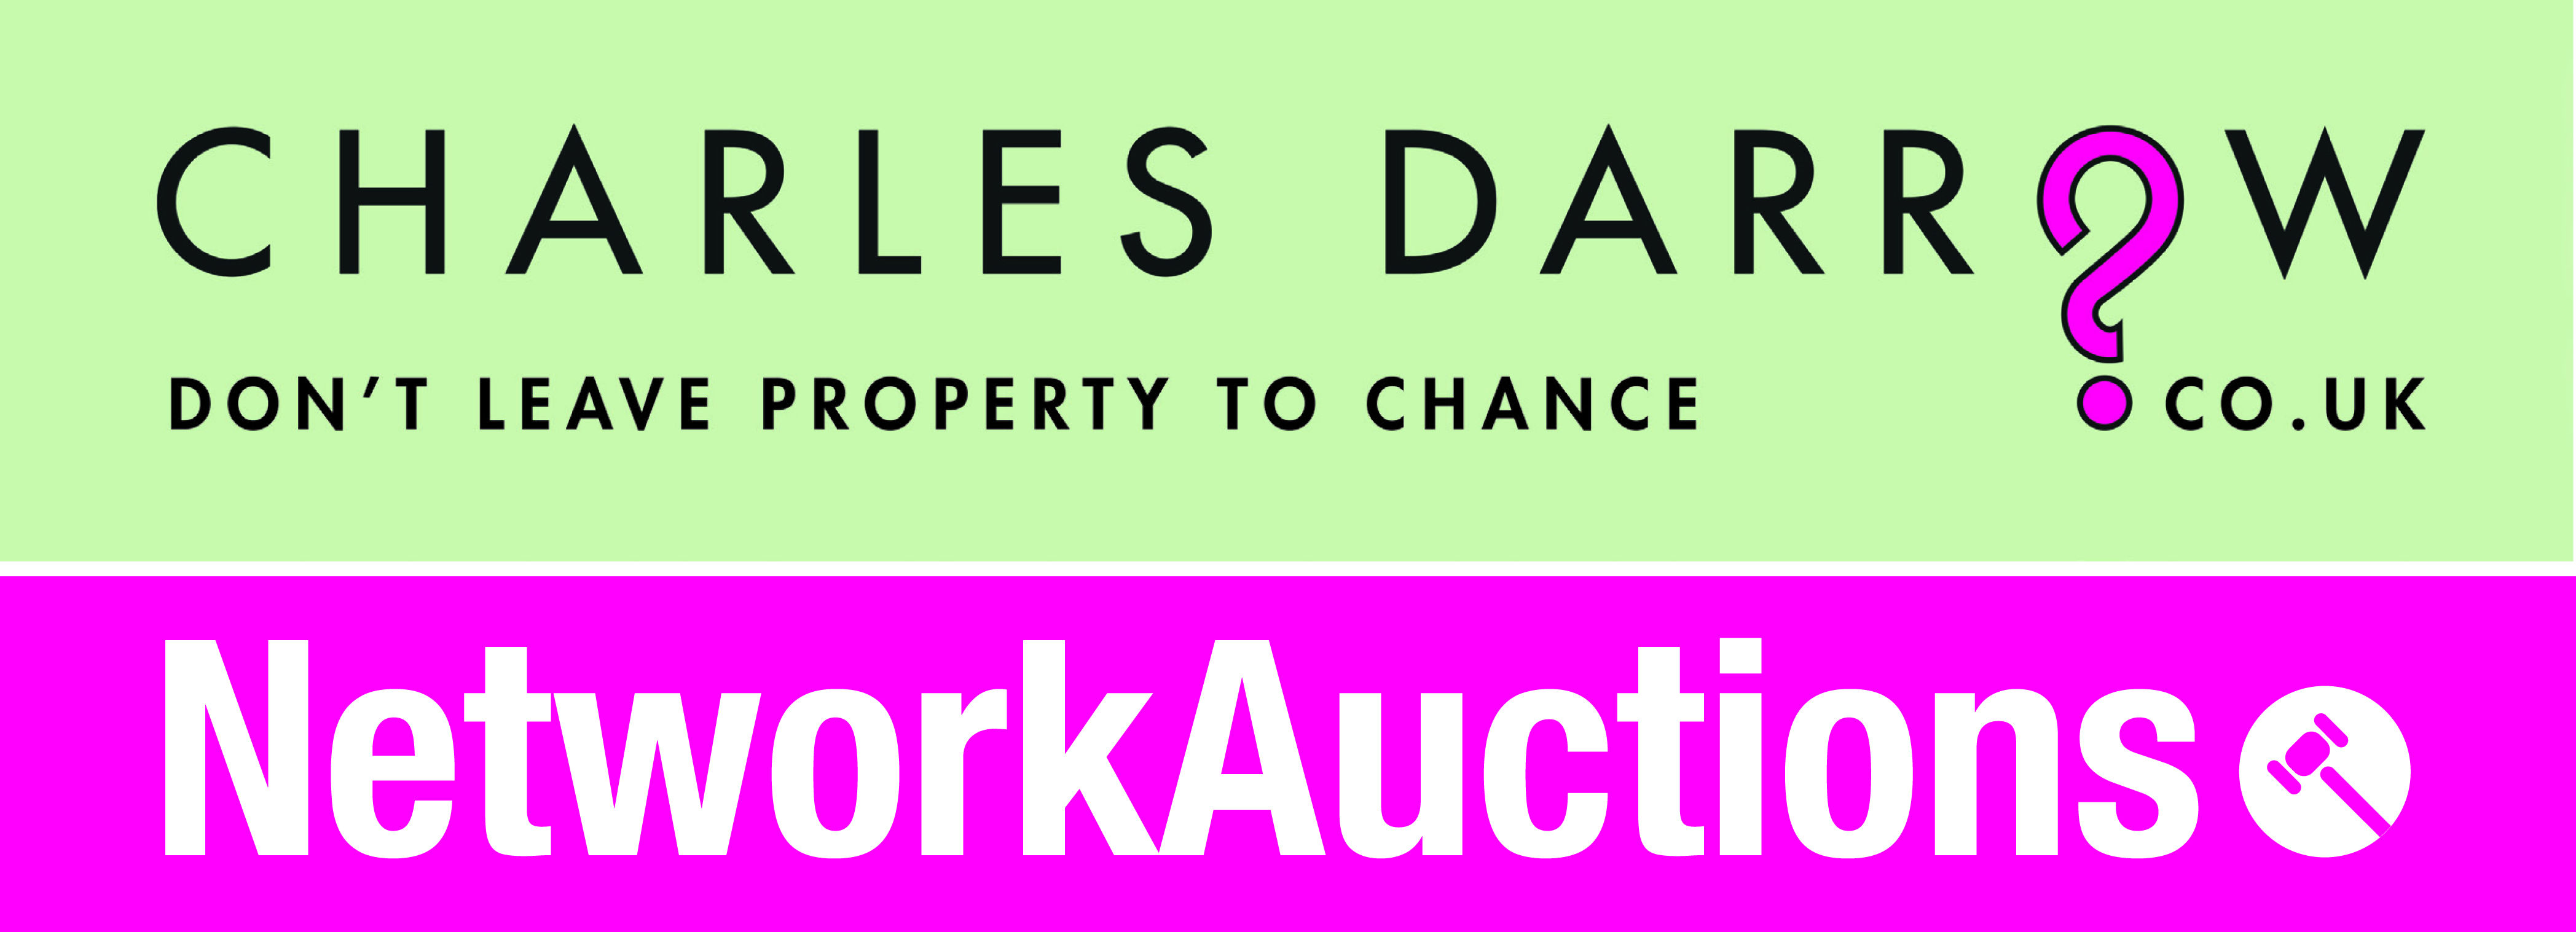 Commercial Property Auctions | Charles Darrow